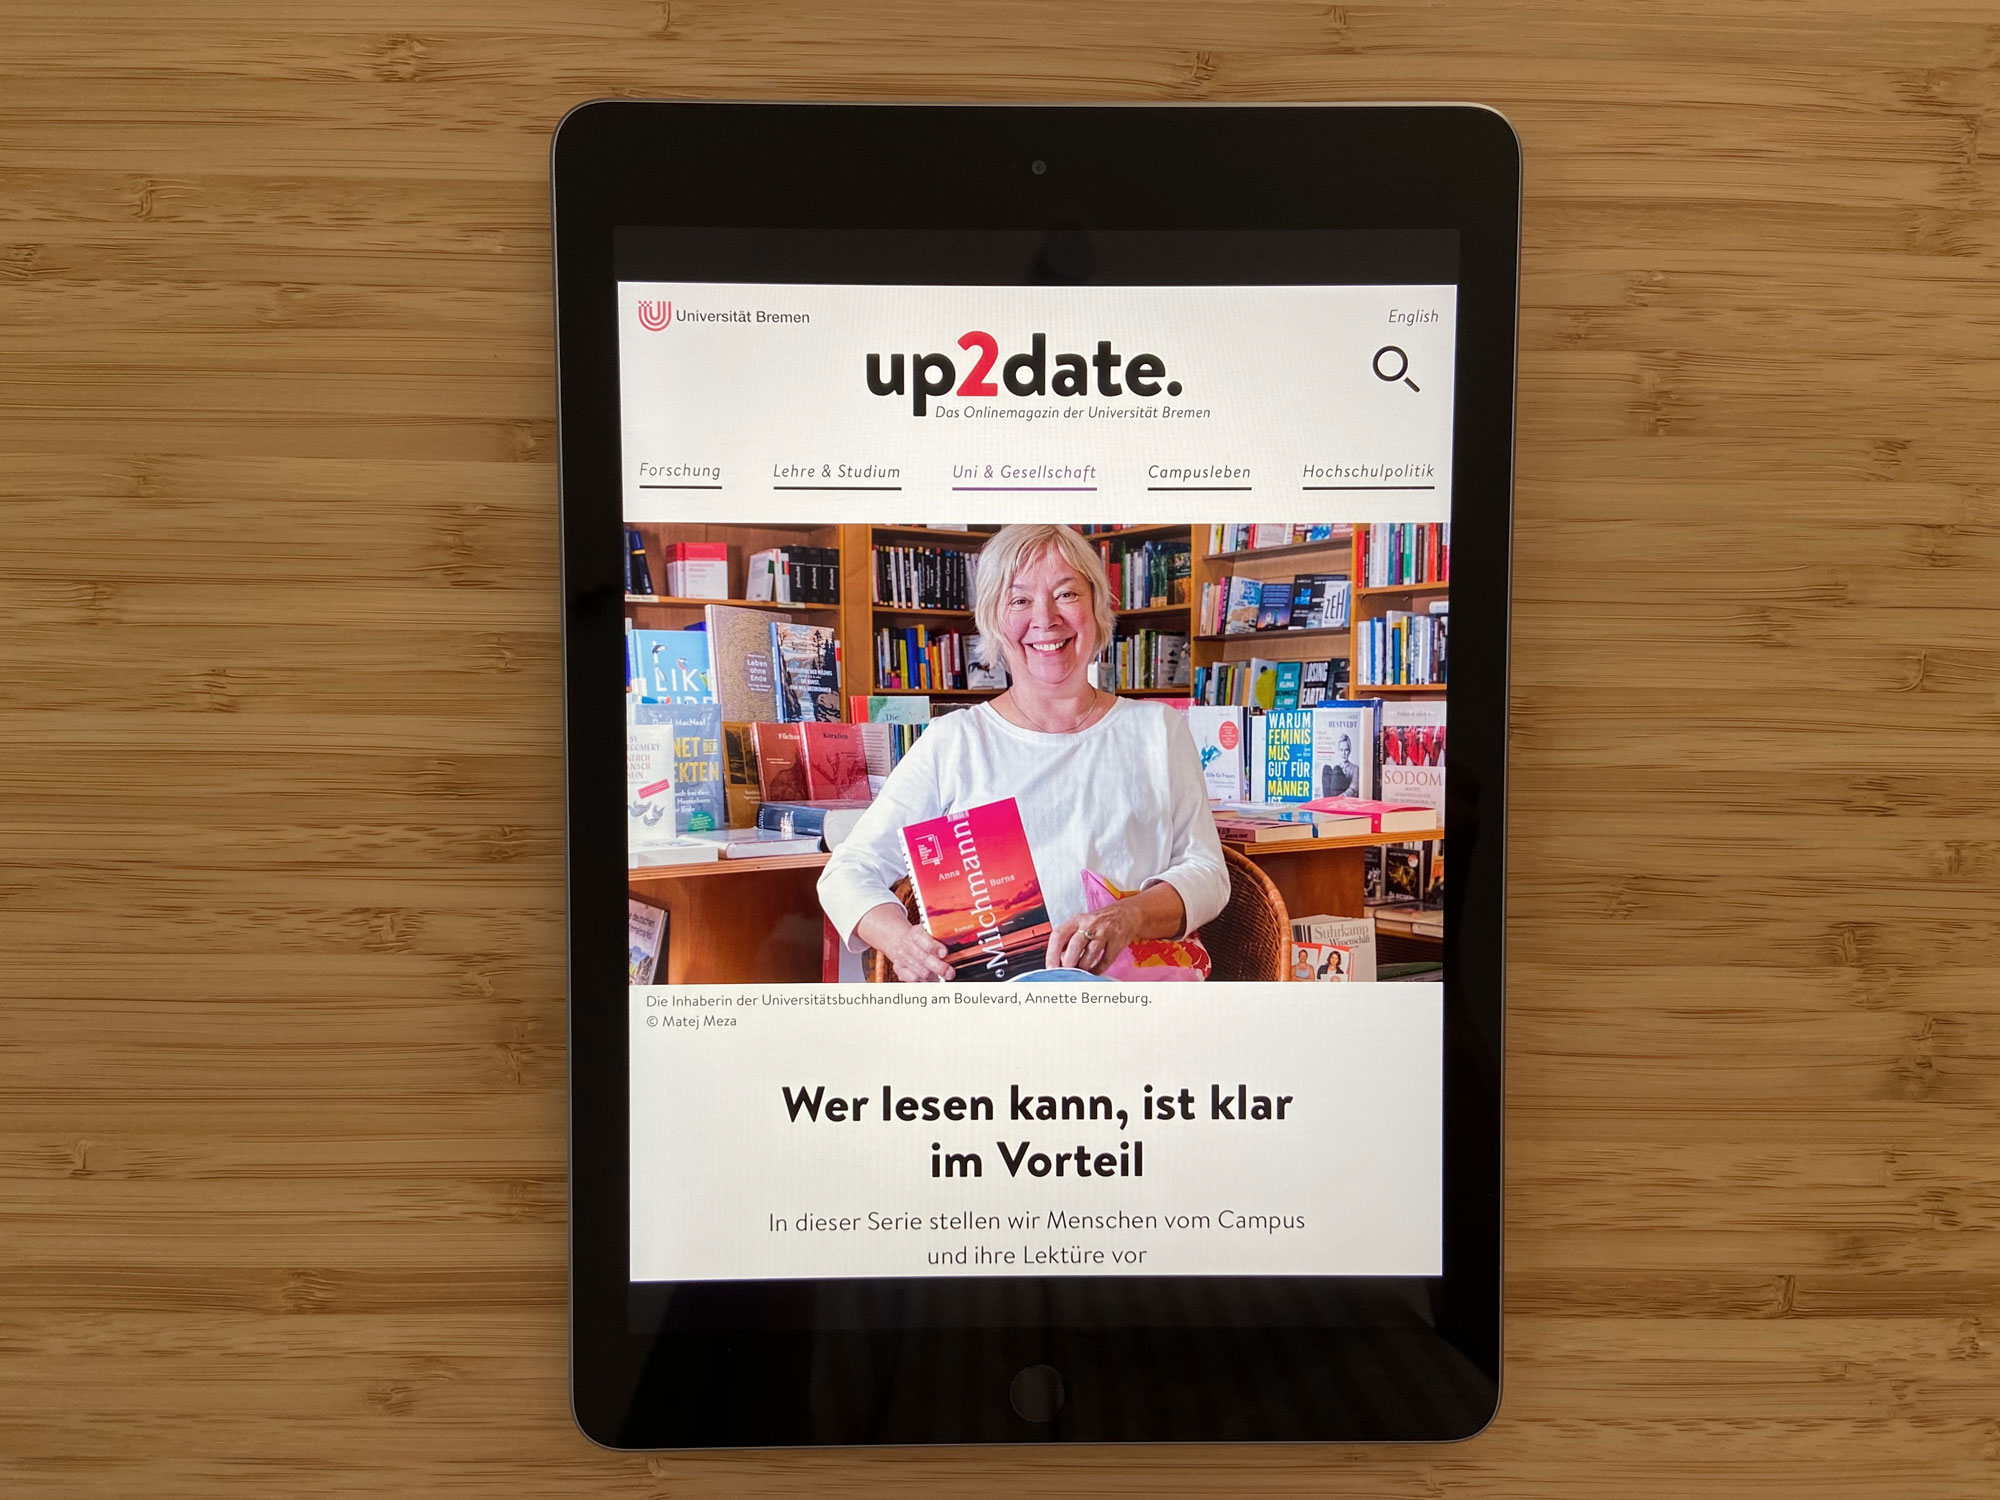 Online Magazin up2date. on tablet